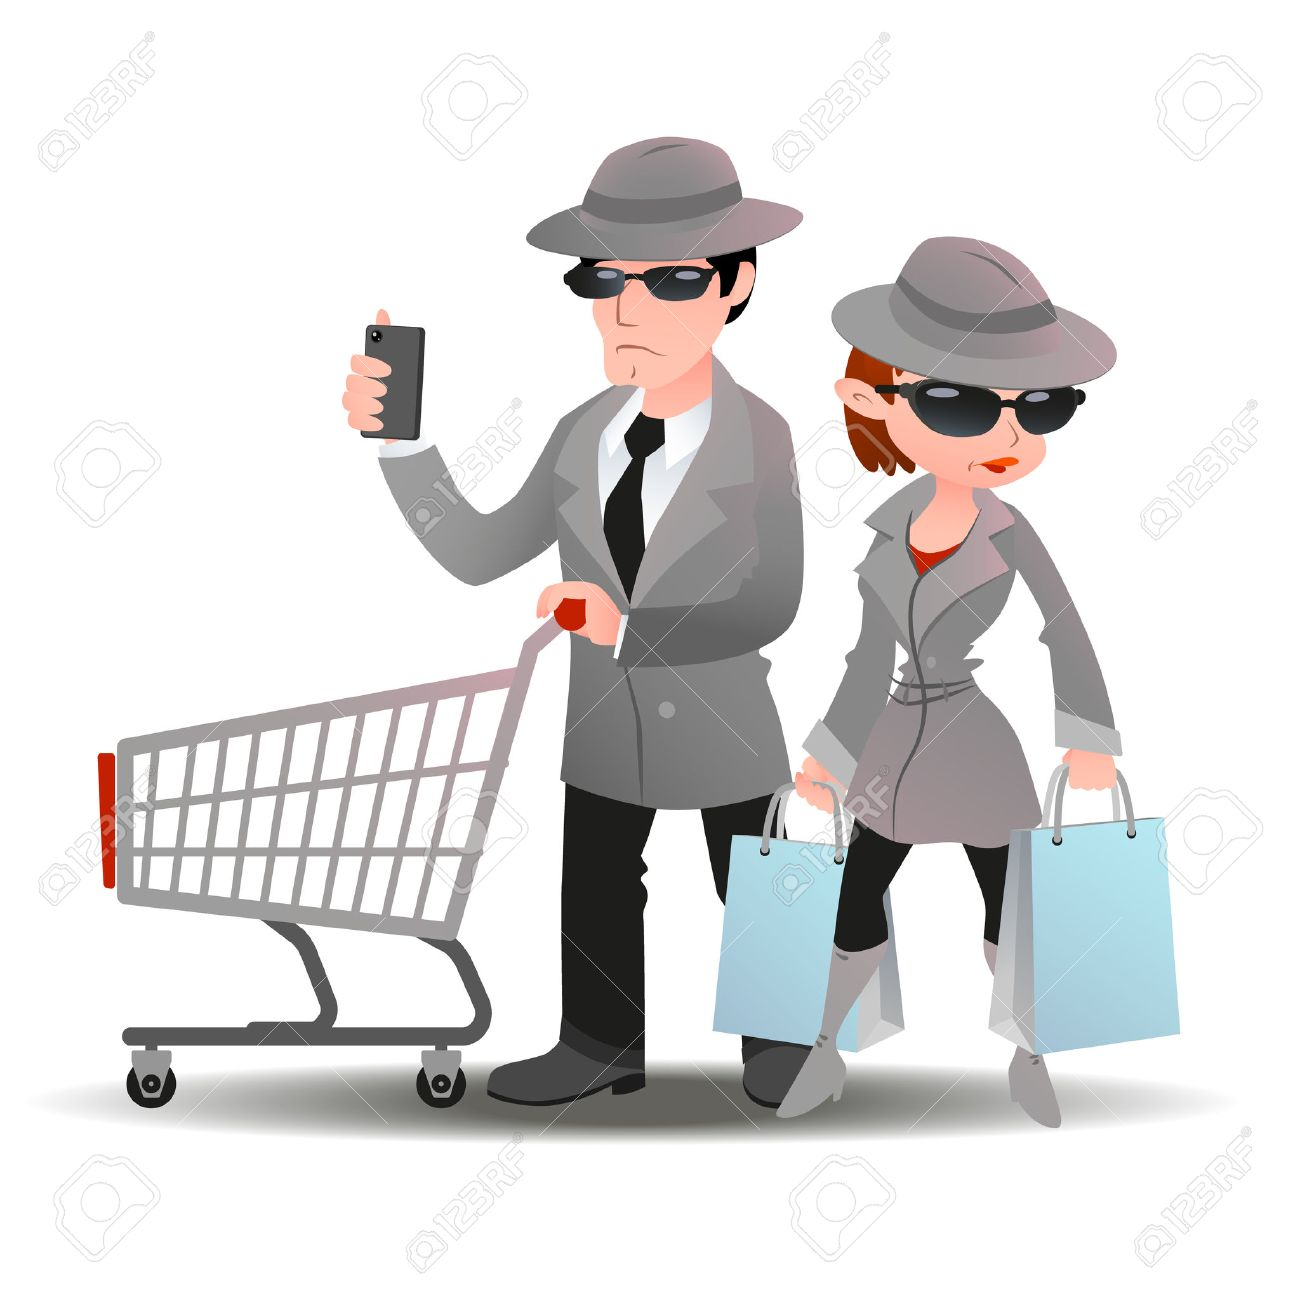 Become a Mystery Shopper 5/9